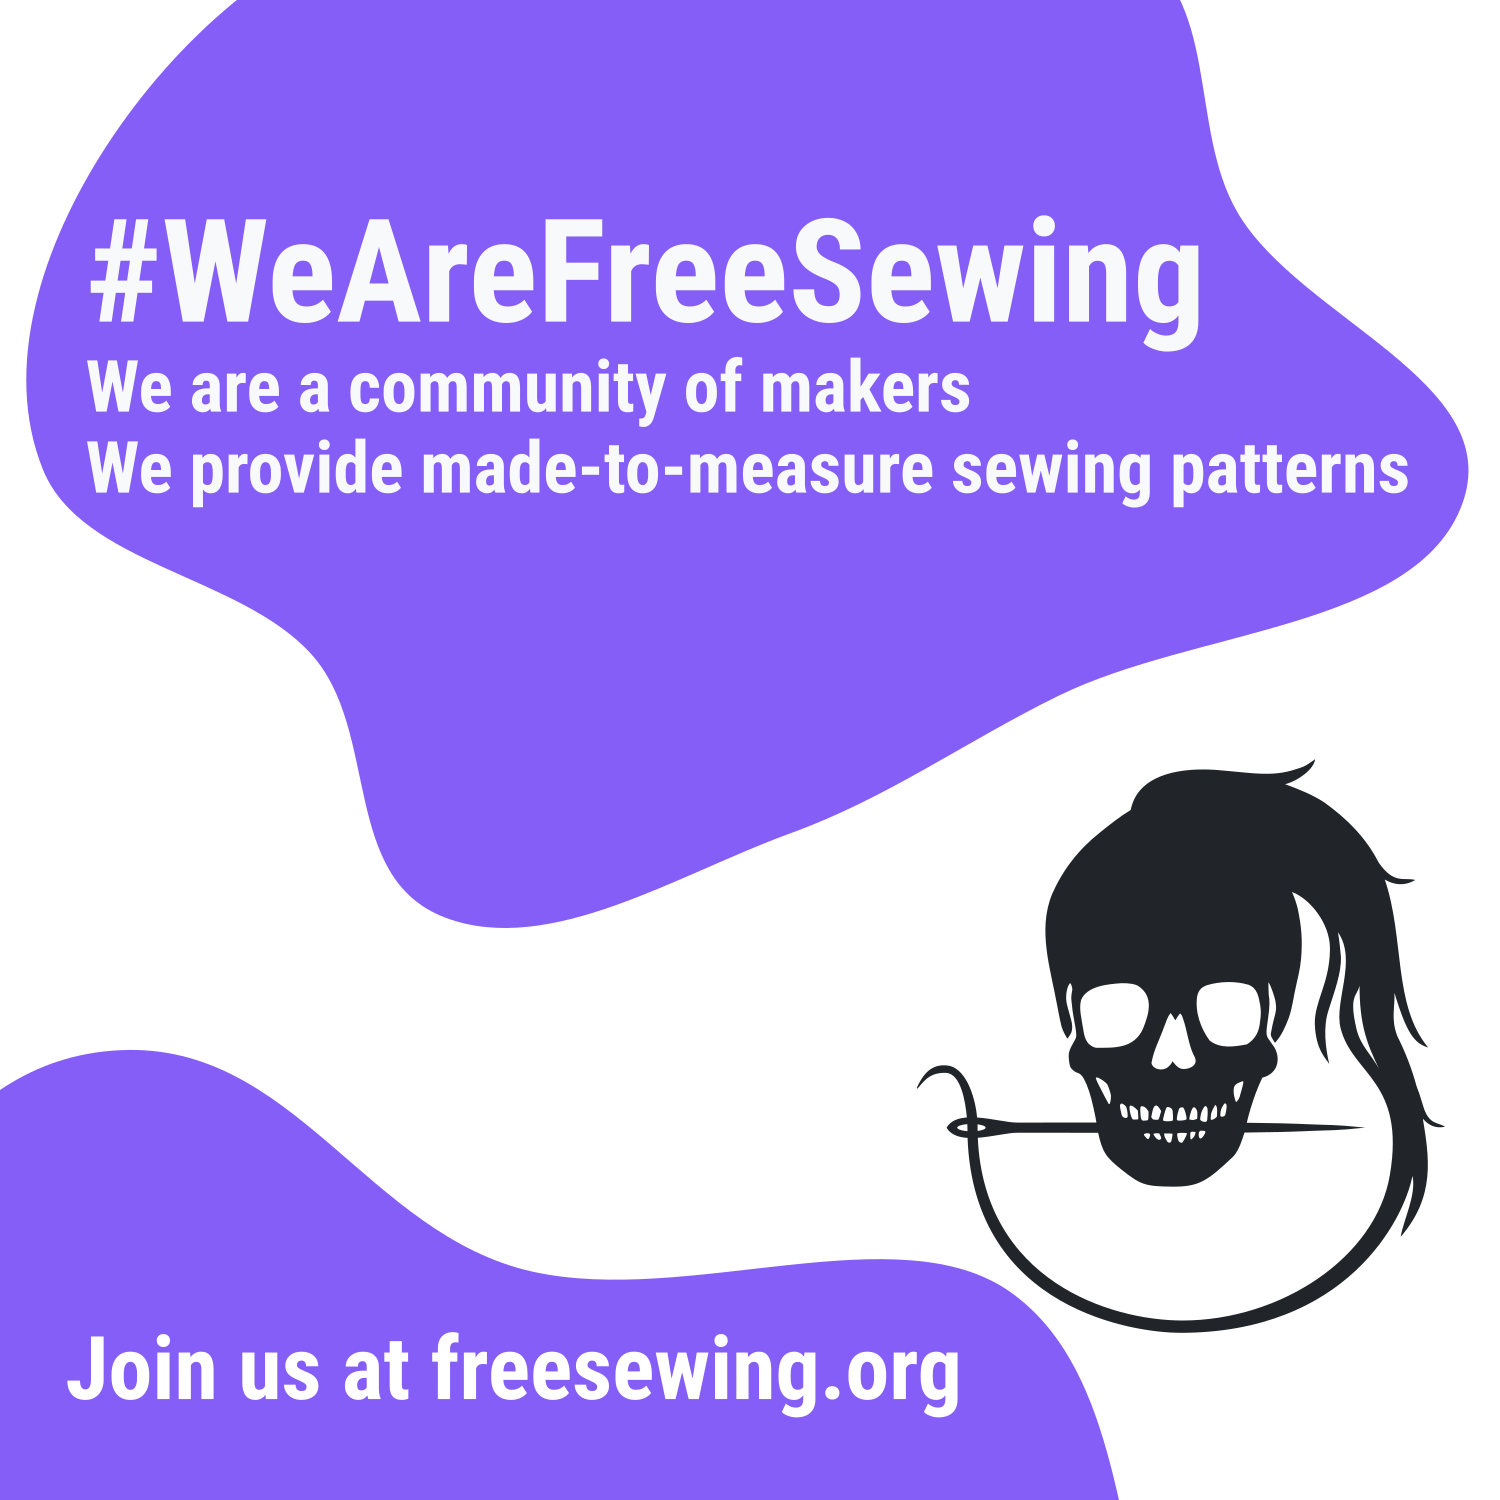 We Are FreeSewing